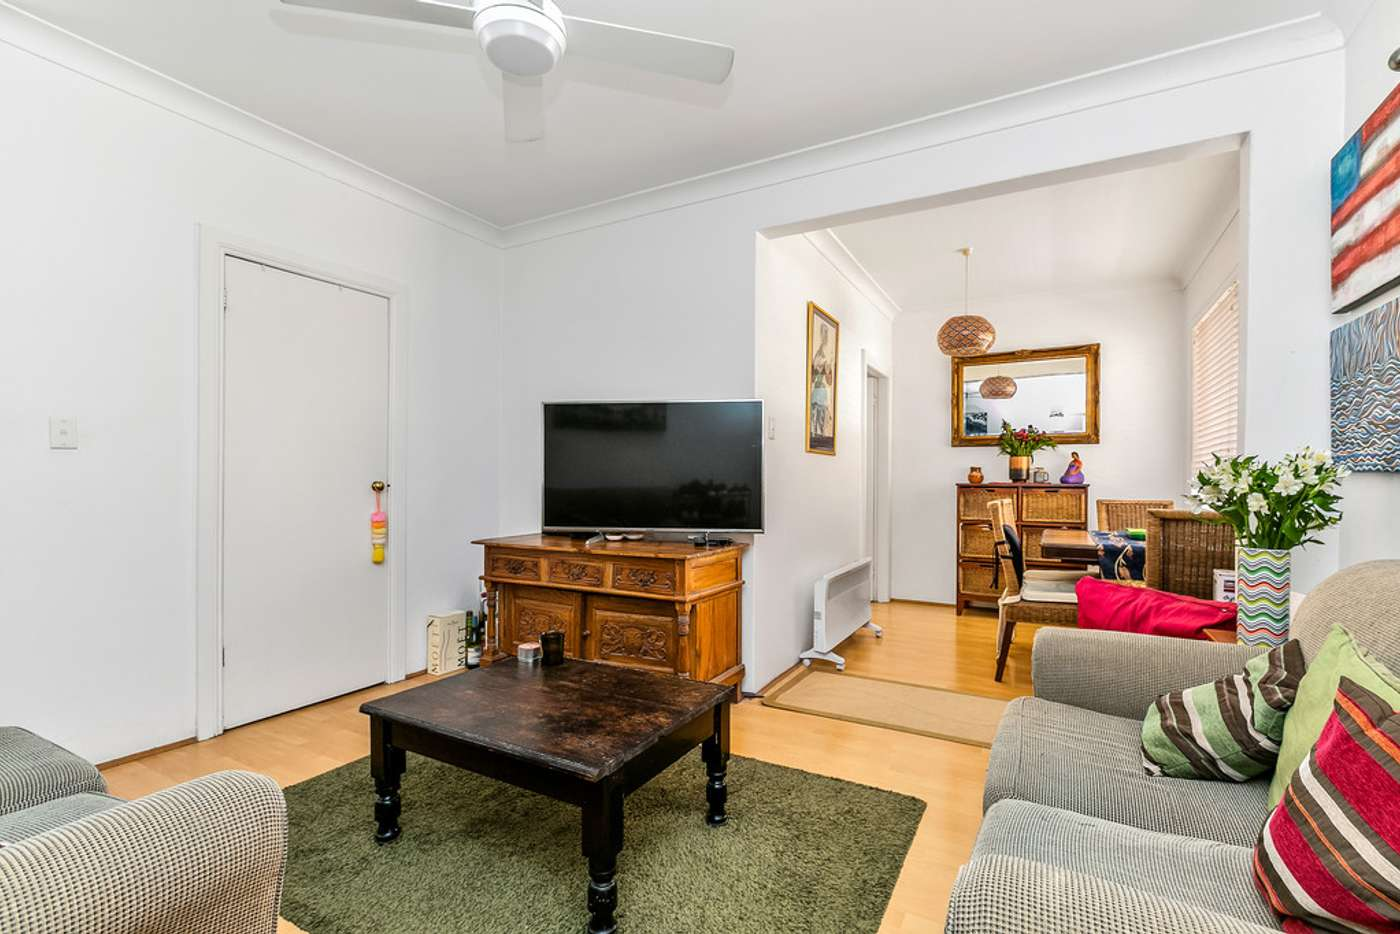 Main view of Homely apartment listing, 4/48 Darley Street, Newtown NSW 2042